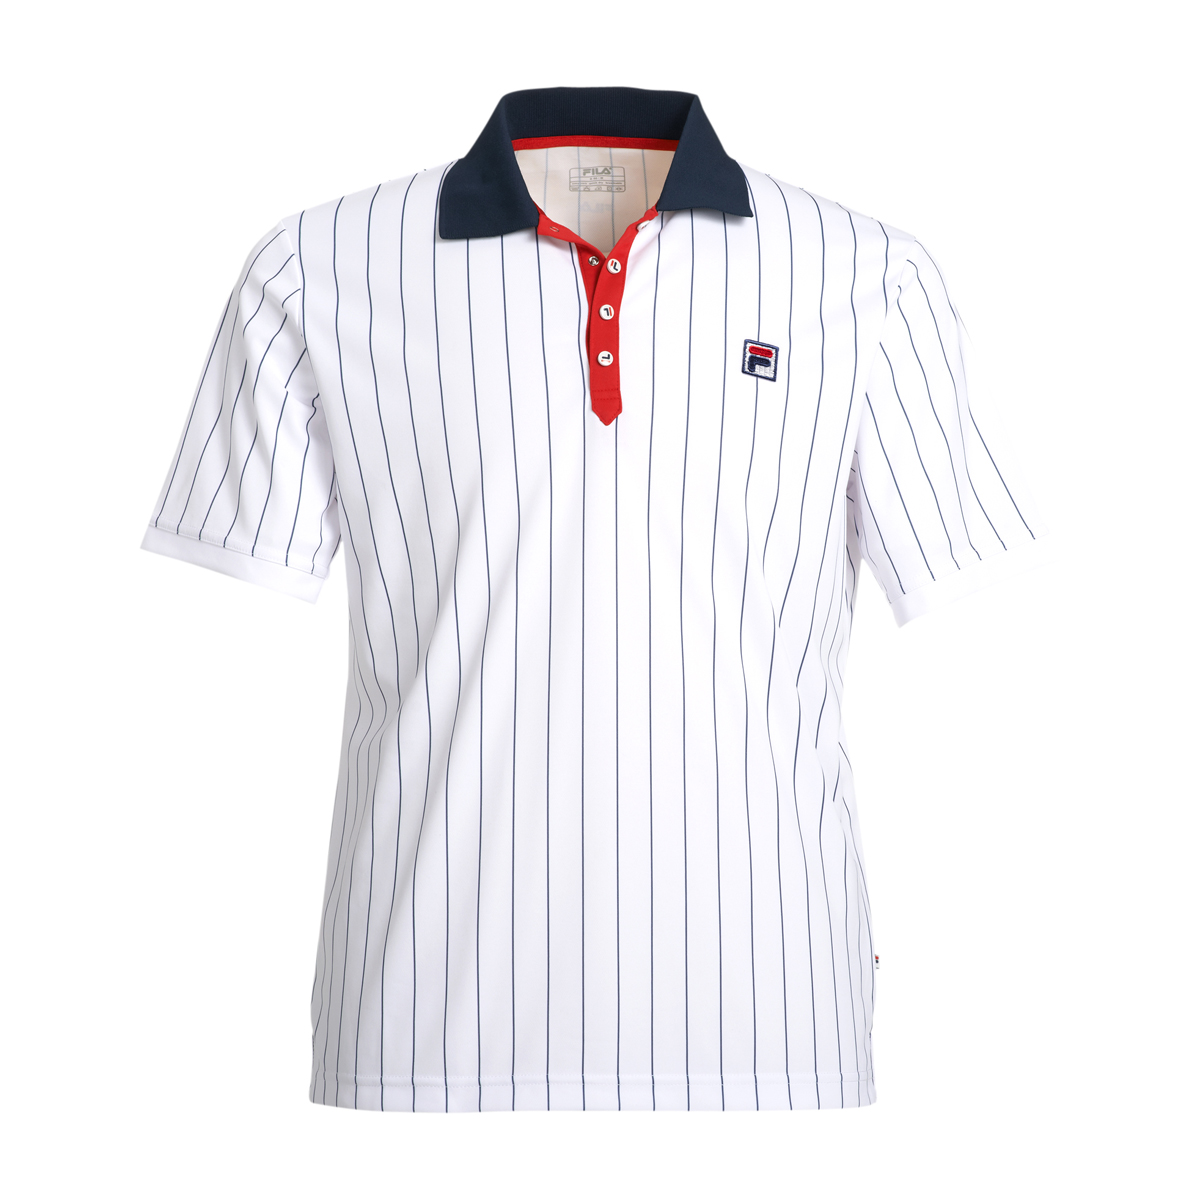 Fila Herren Tennis Polo Shirt Stripes weiß